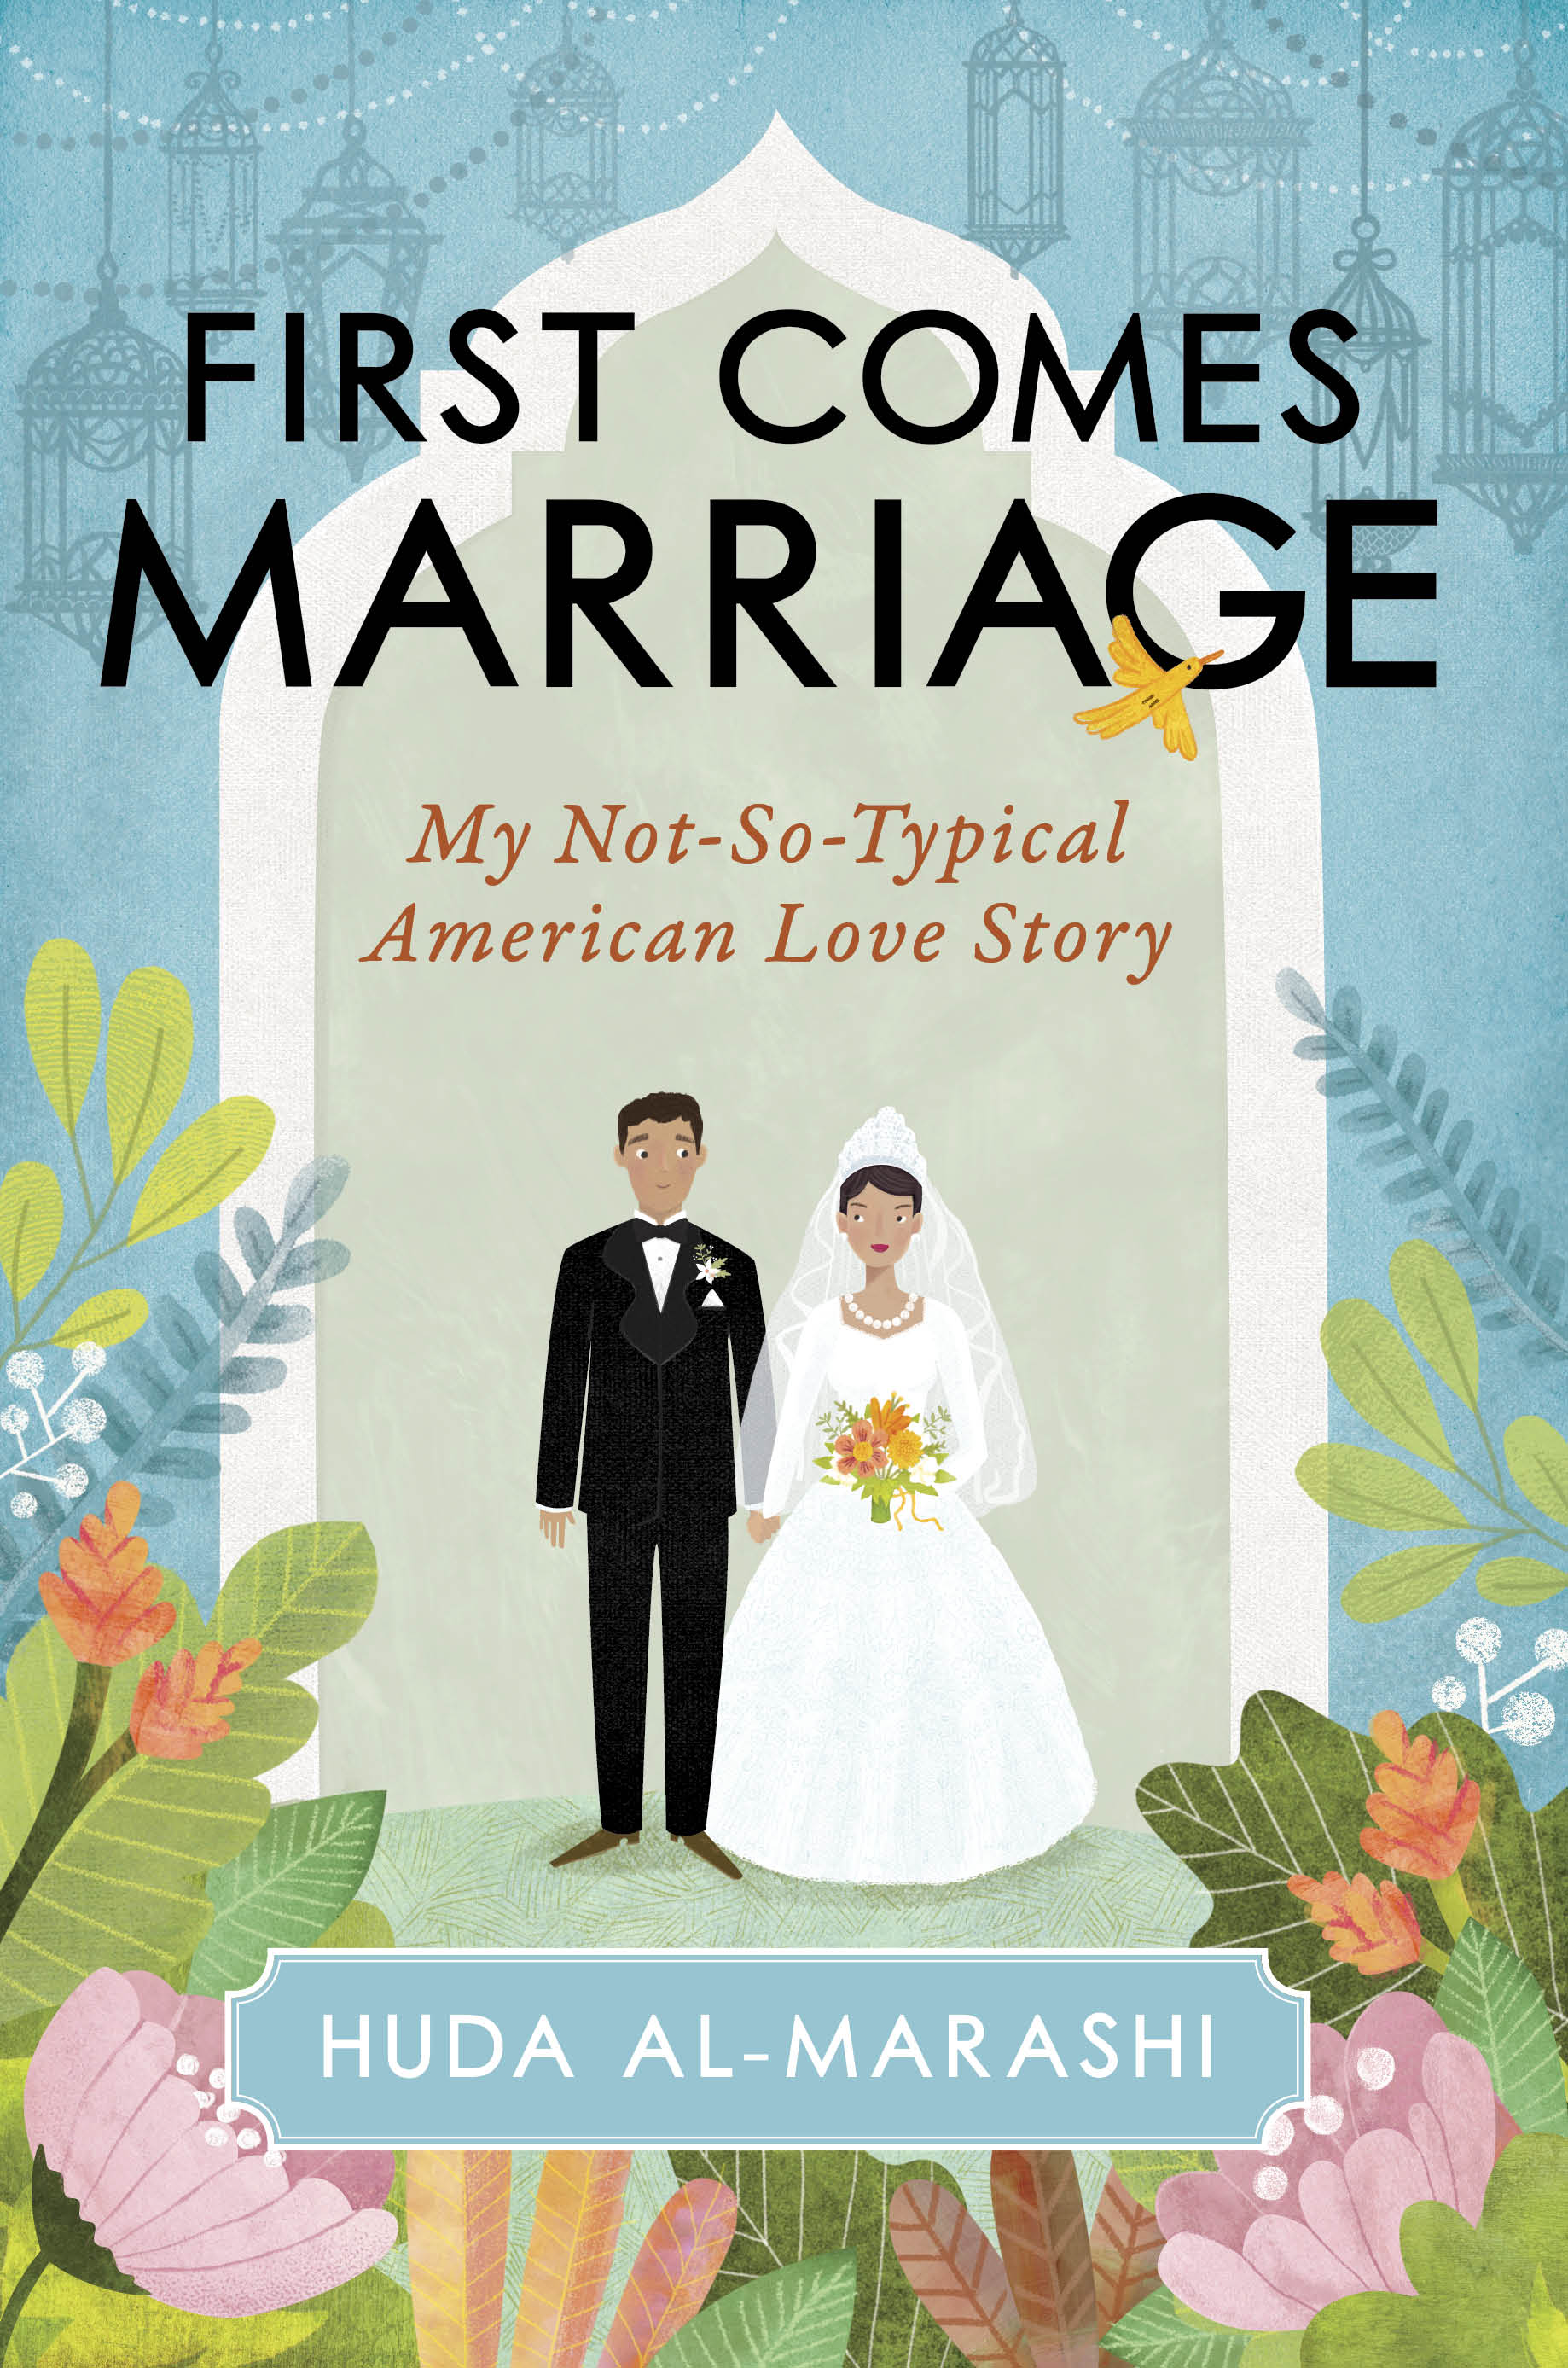 First Comes Marriage,' by Huda al-Marashi book review - The